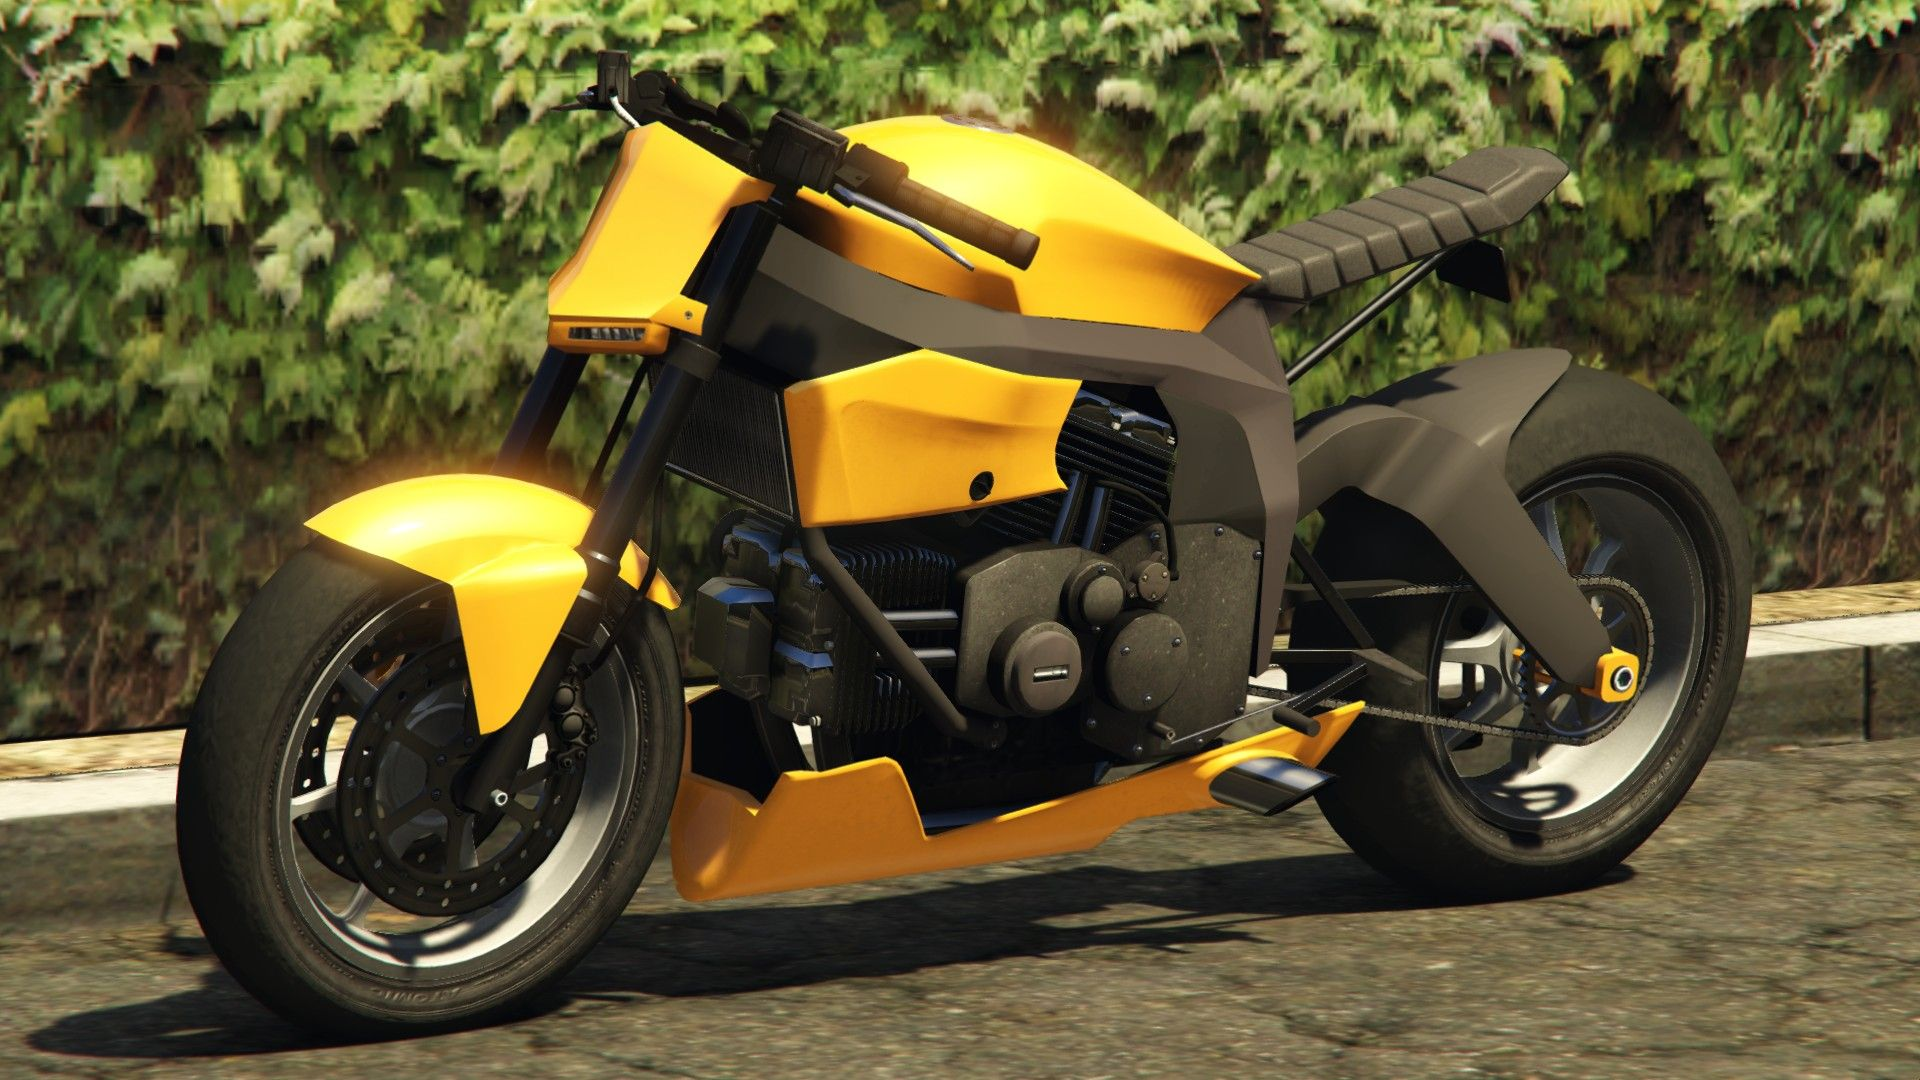 Pin By Ricardo Rodriguez On Gta 5 Van Vehicles Motorcycle